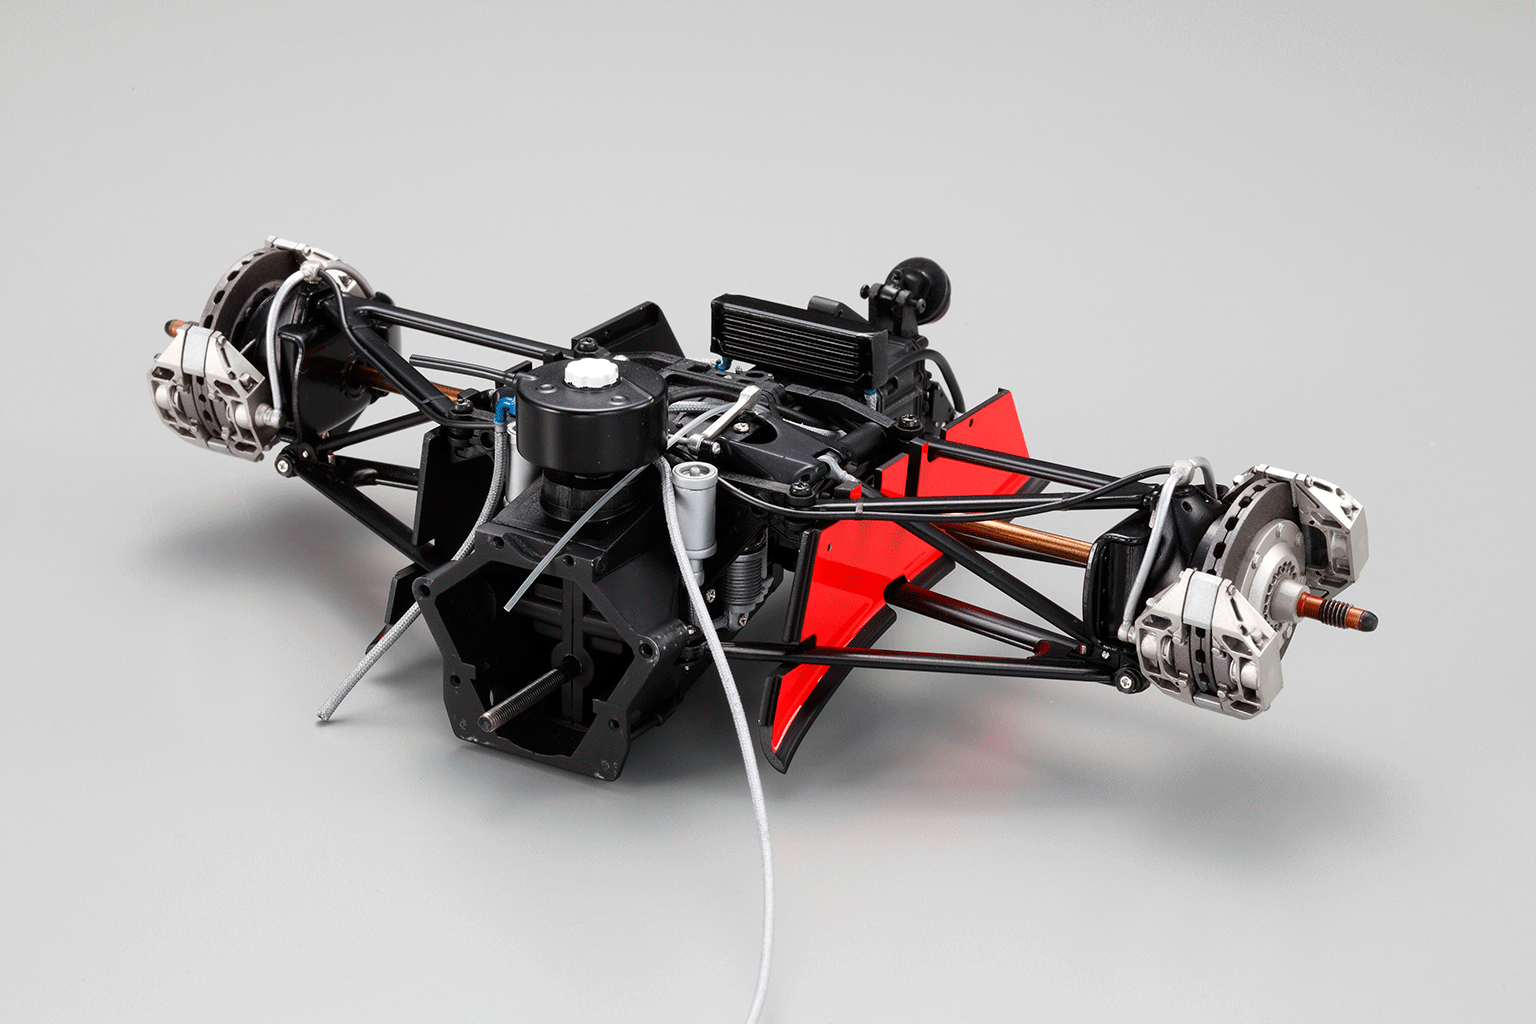 build your own rc car kit with Build Senna Mclaren Mp4 4 on Benefits Of Incorporating Woodwork Into Your Living Room likewise Qs Dual 8kW 8 8kW Hub Motor Electric Hybrid Car Conversion kit kits besides  in addition Wti0001p likewise 470907704759131086.